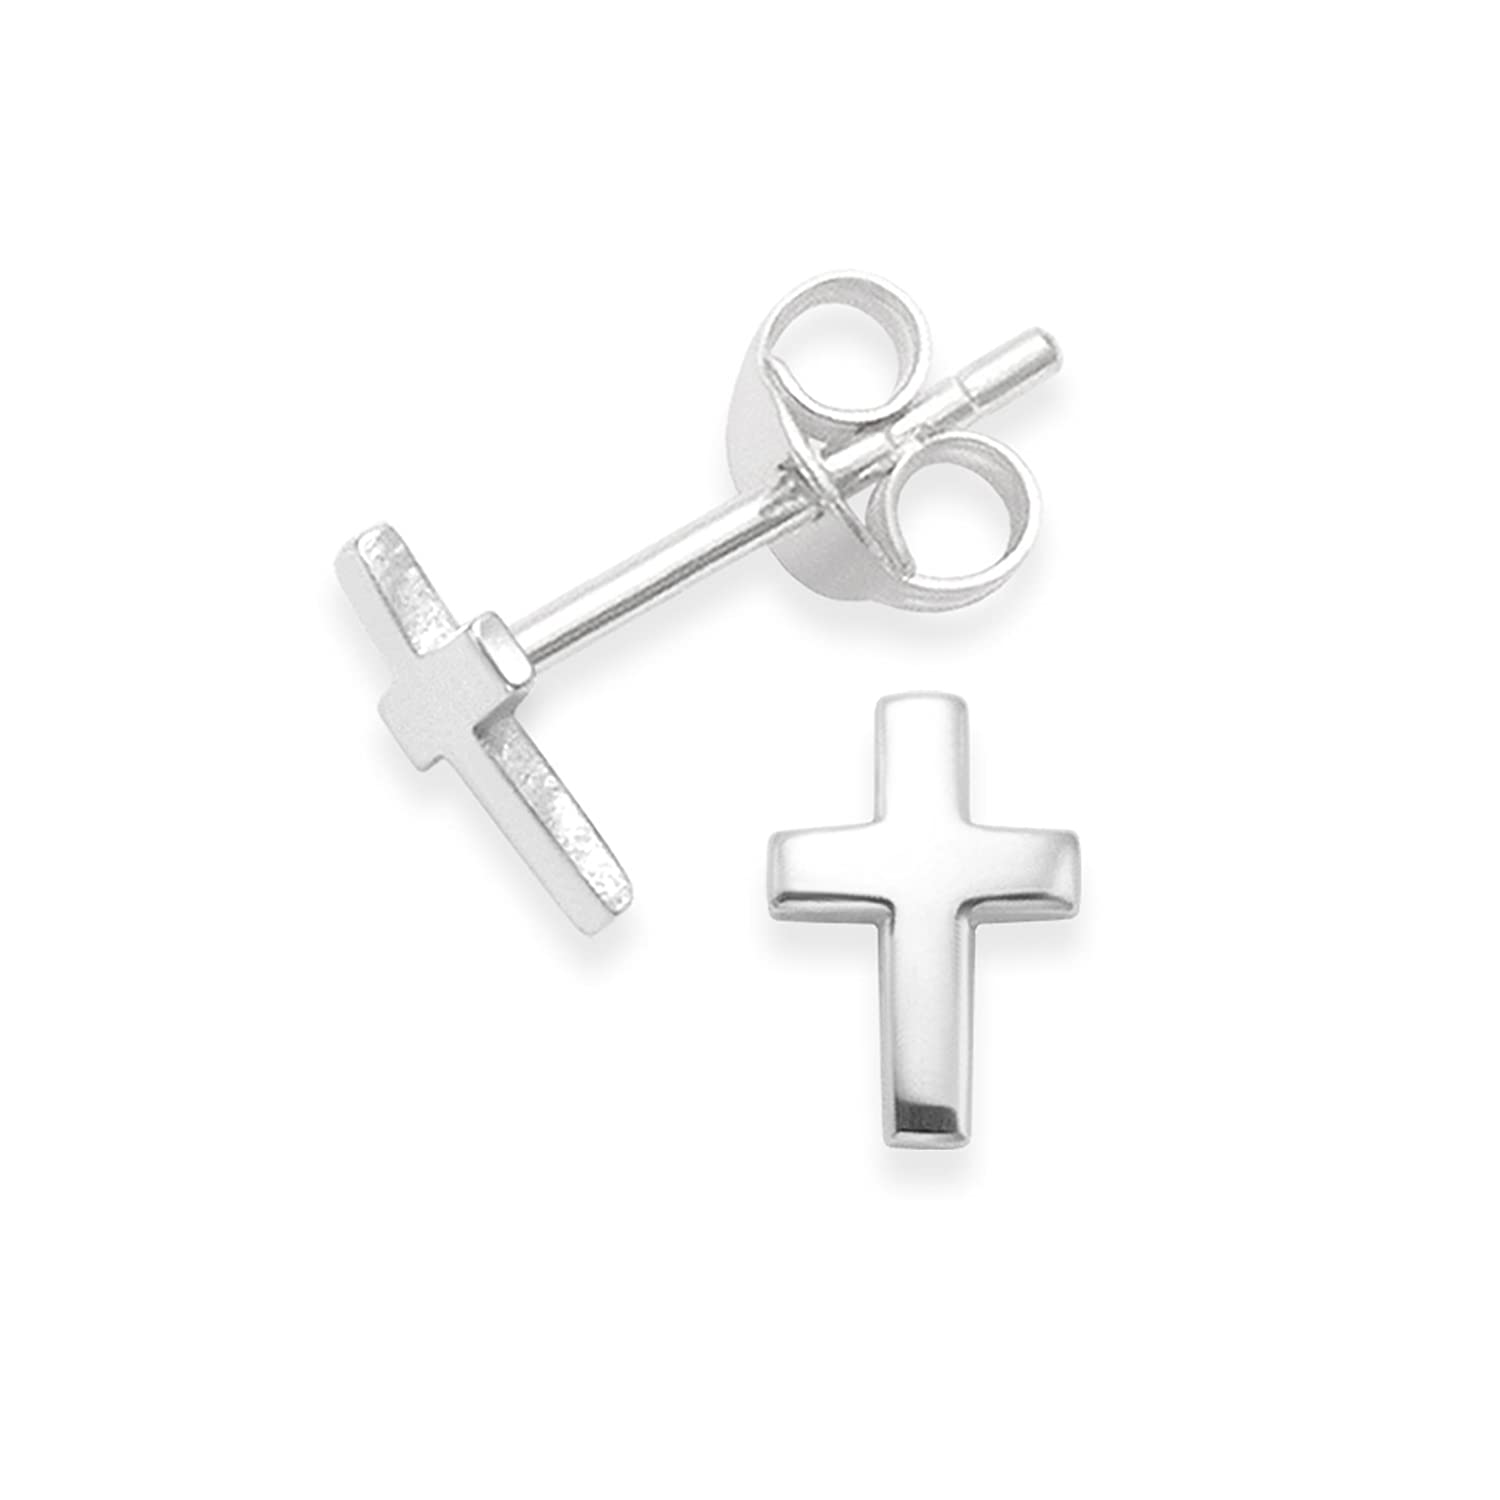 steel com amazon stud for gold stainless silver women small men pairs piercing earrings jewelry black dangle cross and dp studs